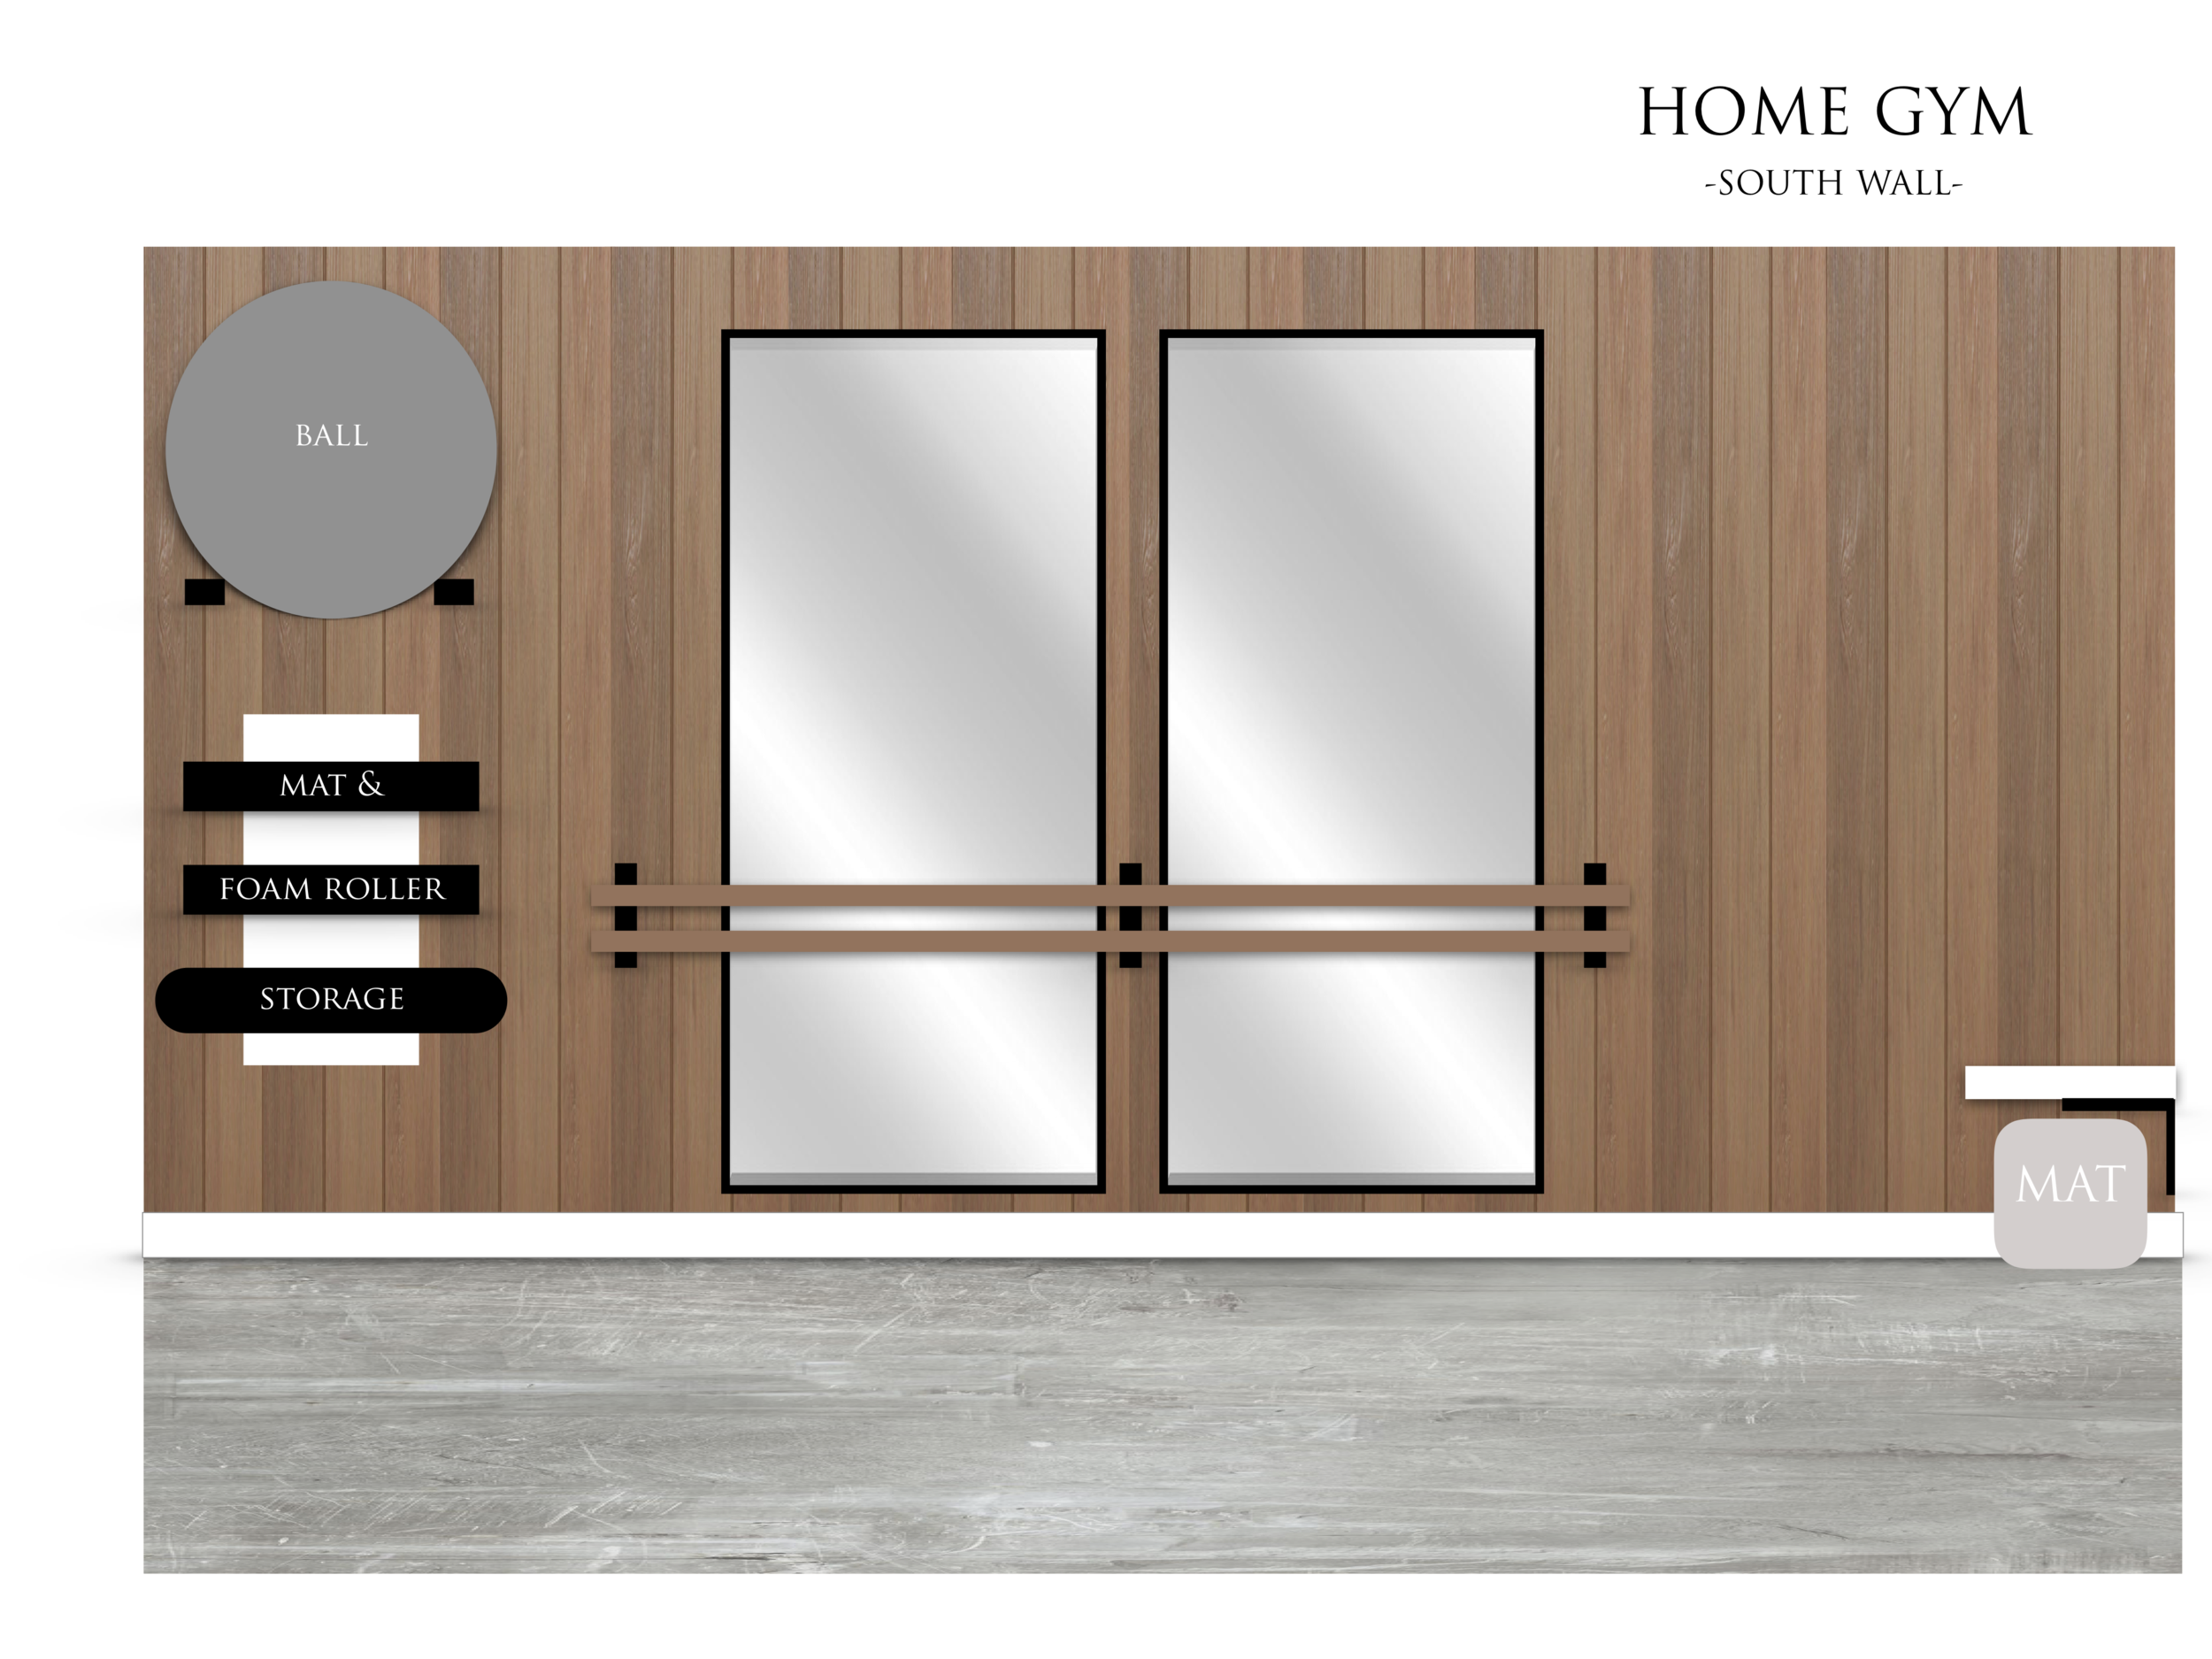 HOME GYM_Rendering_South Wall.png